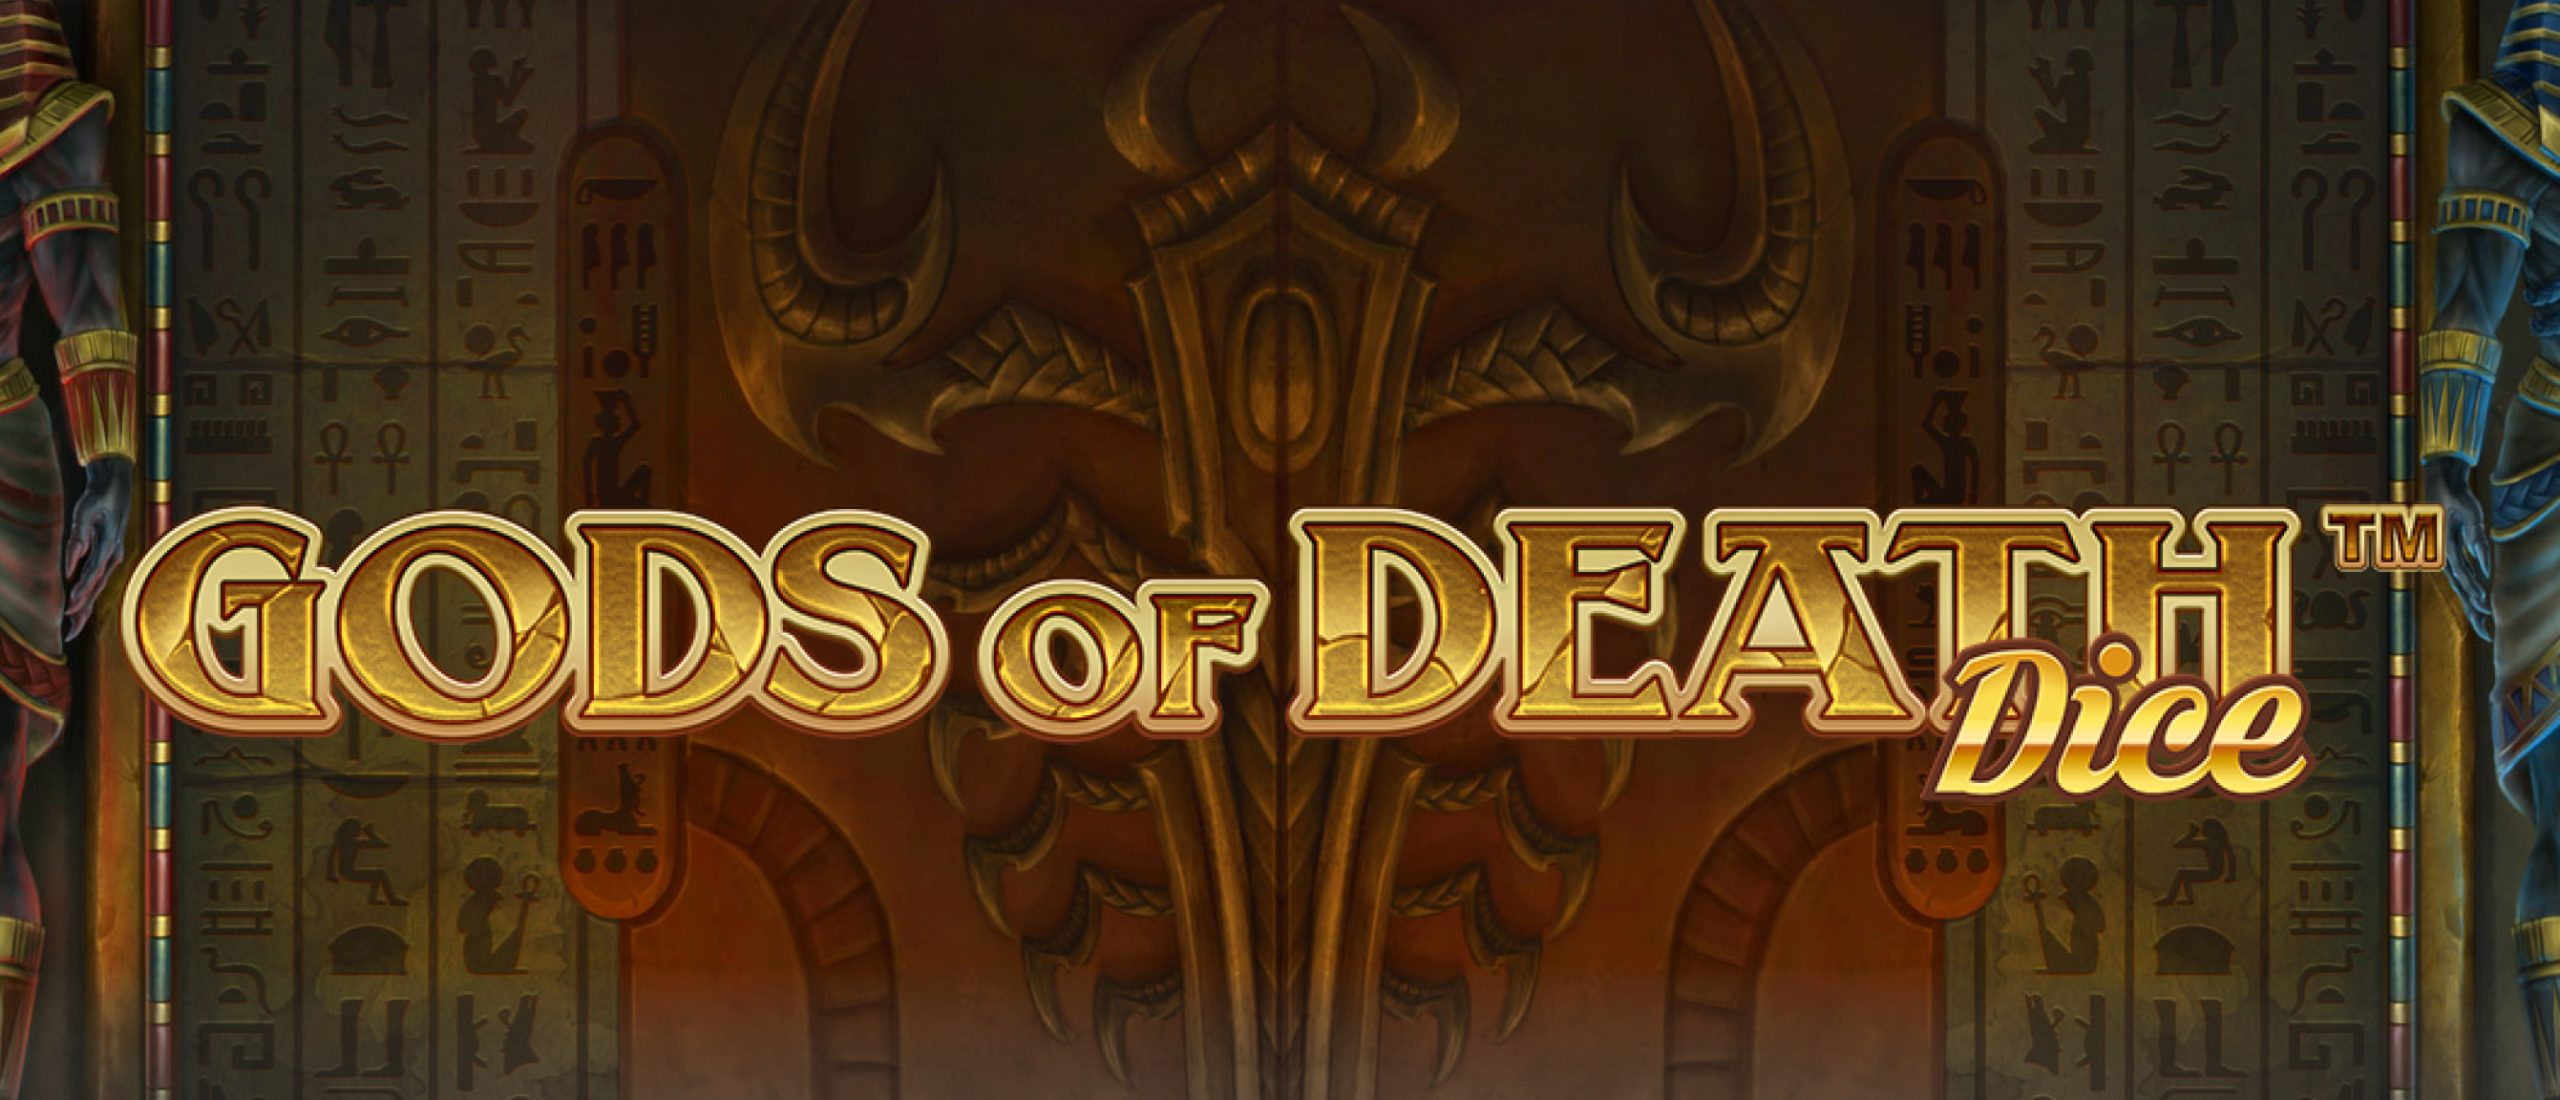 If you are a fan of dice slots, Gods of Death Dice dice slot by Stakelogic is worth checking out on betFIRST Casino